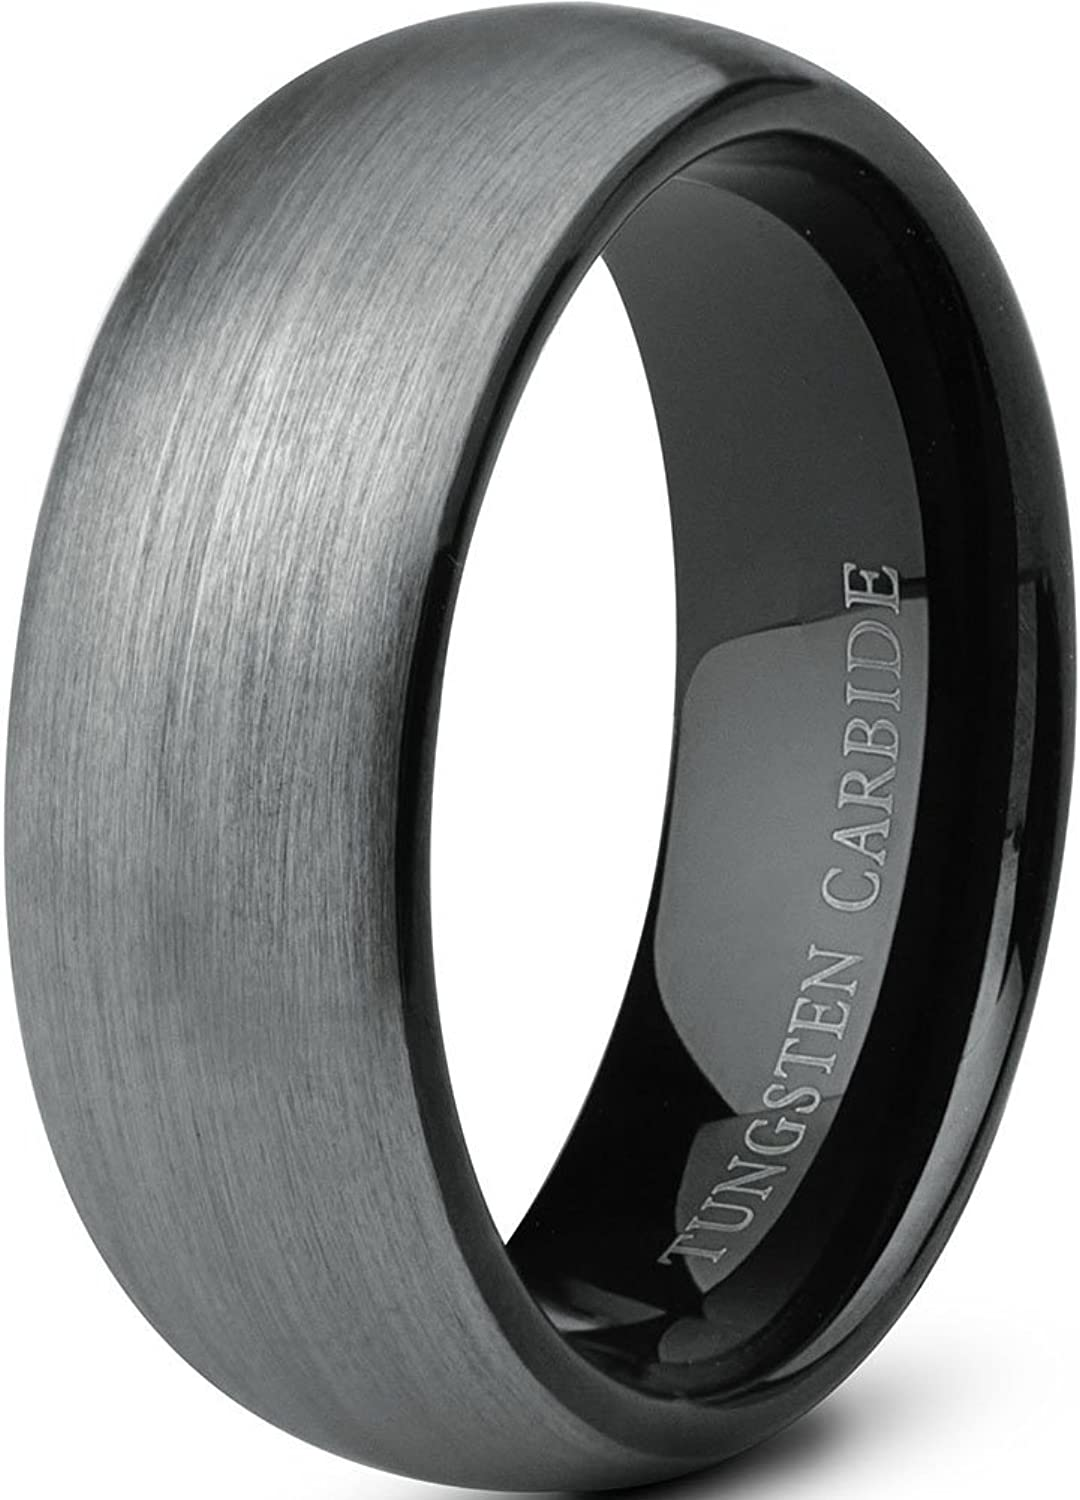 Good Tungary Jewelry Tungsten Rings For Men Wedding Band Black Ring 8mm Size  7 14|Amazon.com